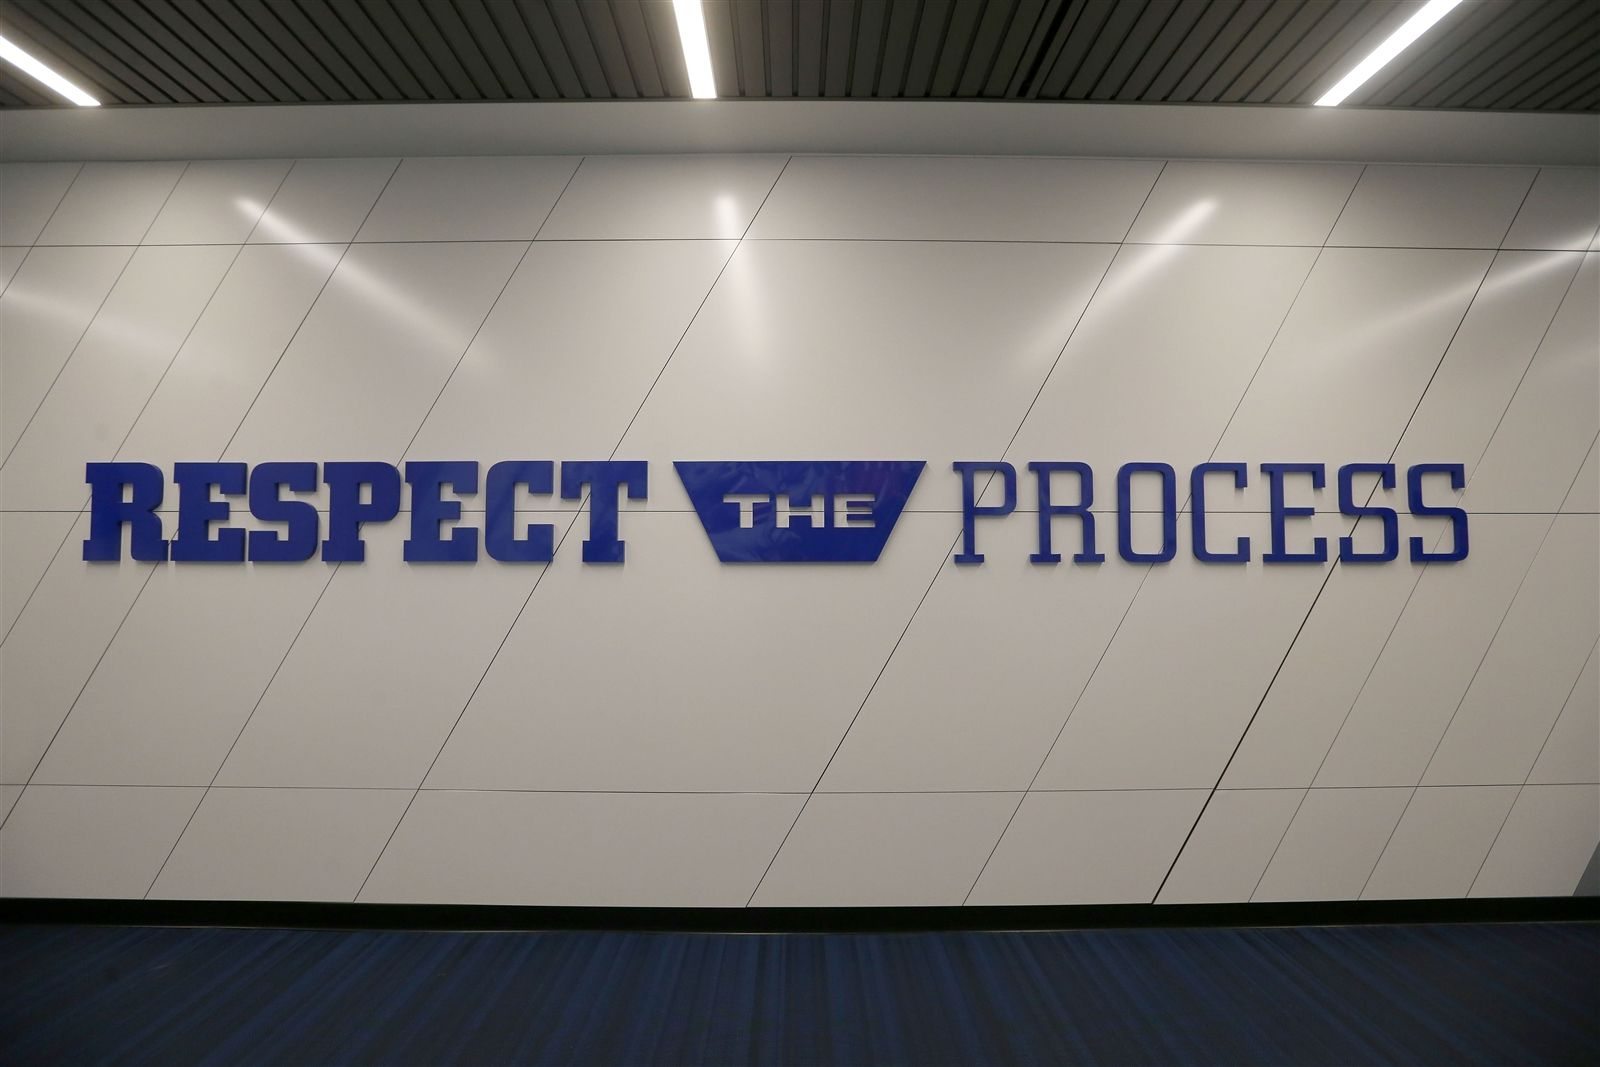 The hallway leading to the new performance center features one of coach Sean McDermott's favorite phrases.